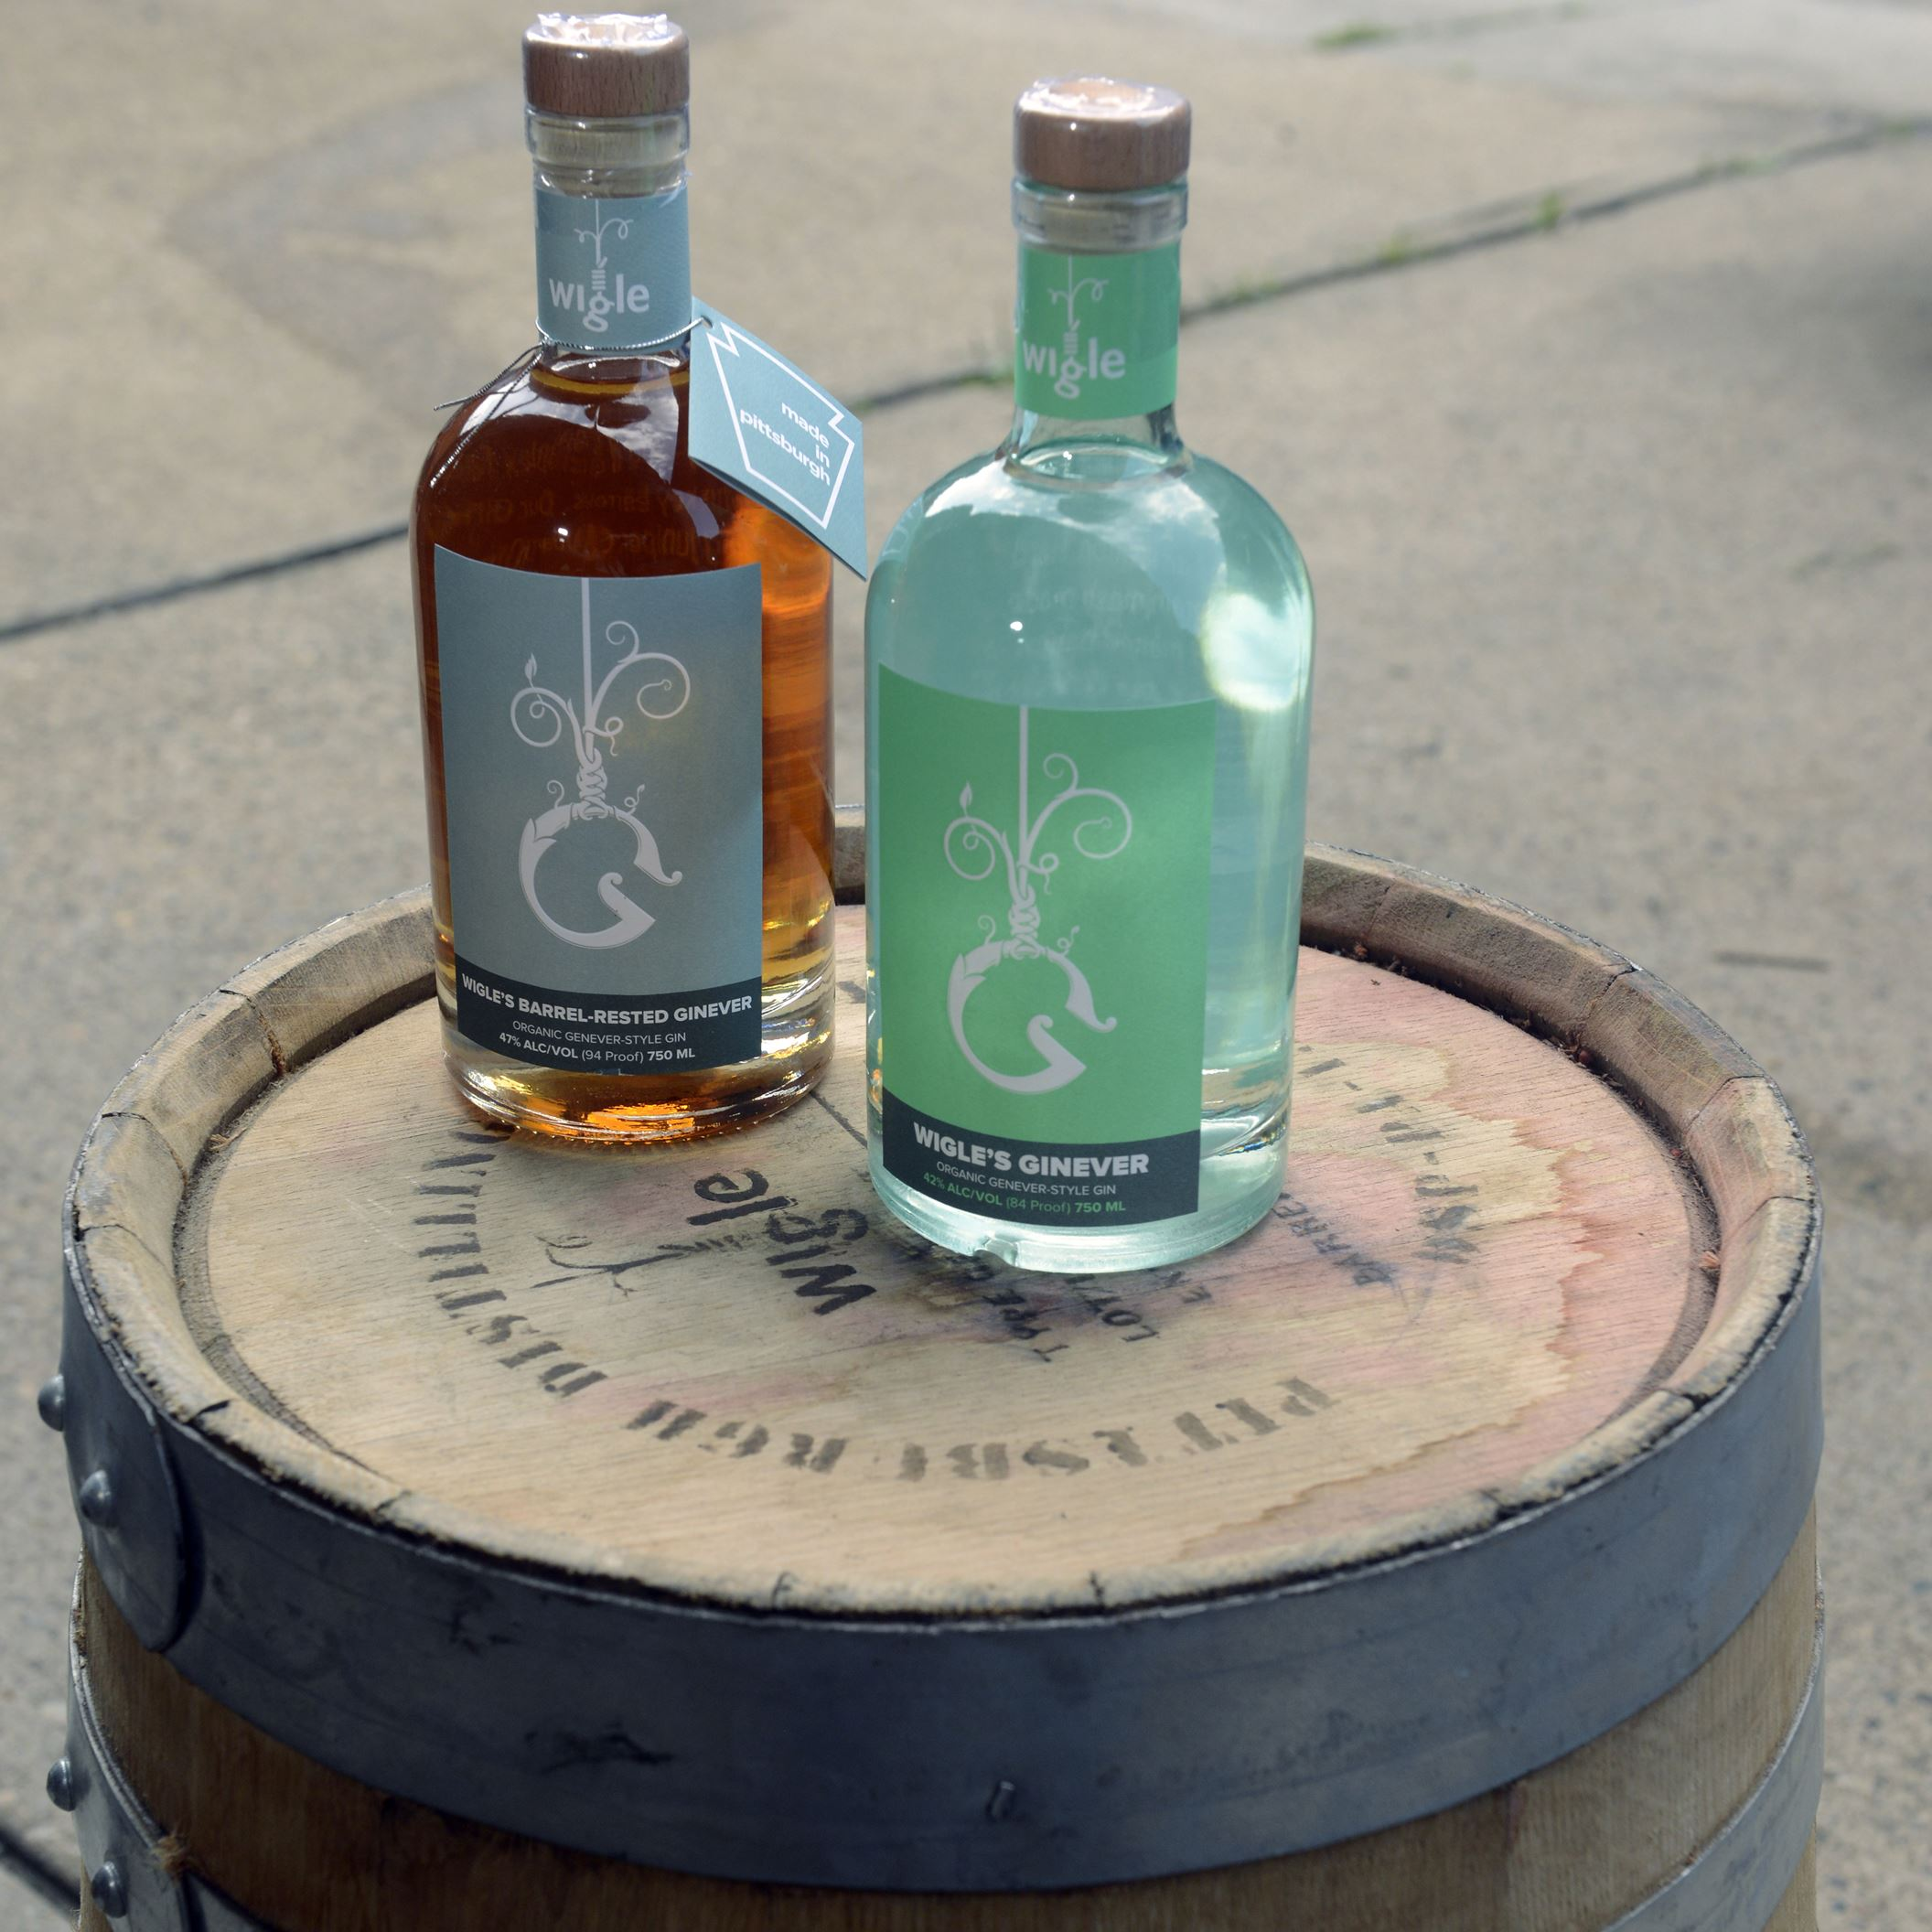 20150711bwWigleDistinction02x-1 Wigle Barrel-Rested Ginever, left, and Ginever by Wigle Whiskey Barrelhouse on the North Side.